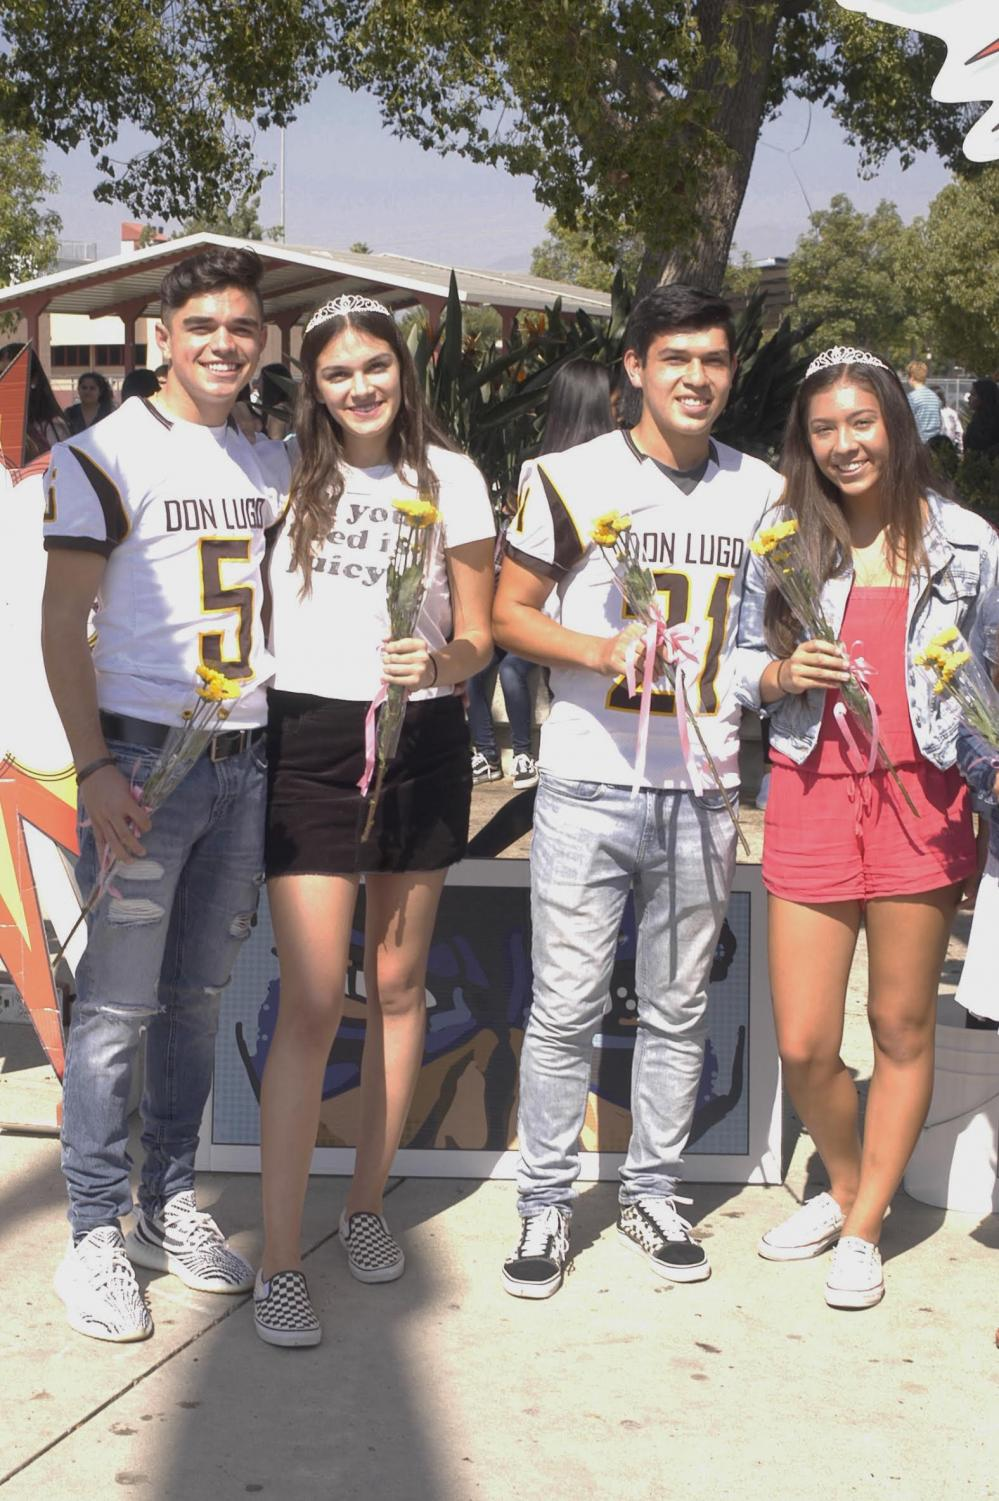 A few candidates of the senior court on the day they announced all nominee's in the quad. From right to left Austin Holland, Brandie Altuna, Diego Gomez, and Briana Cabrera. Photo courtesy of Daniel Pahutan